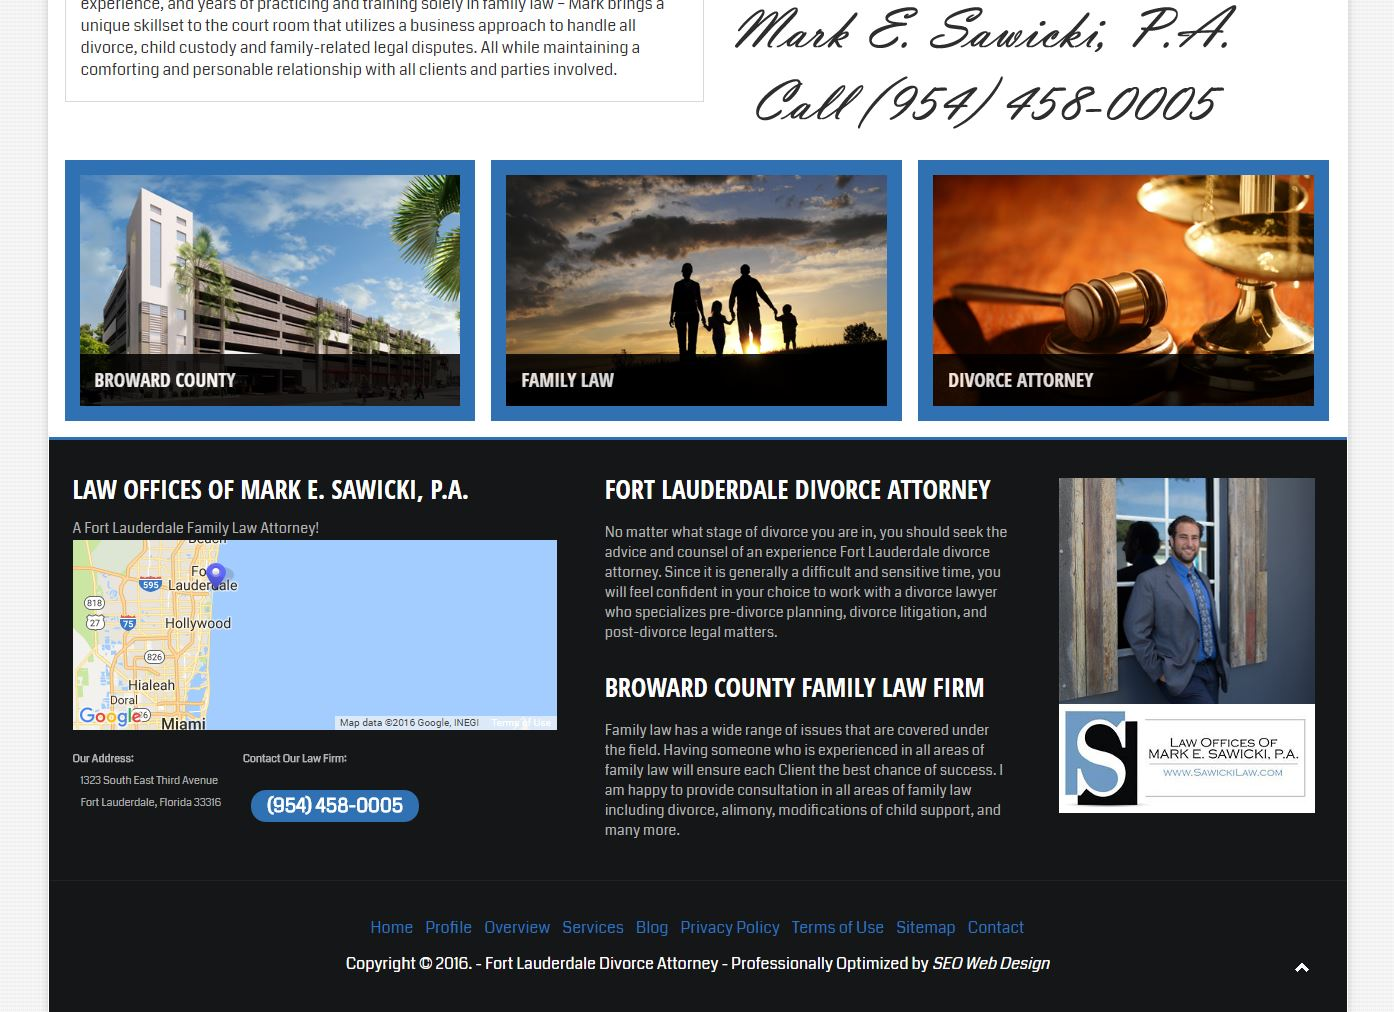 Attorney Website Design sl2